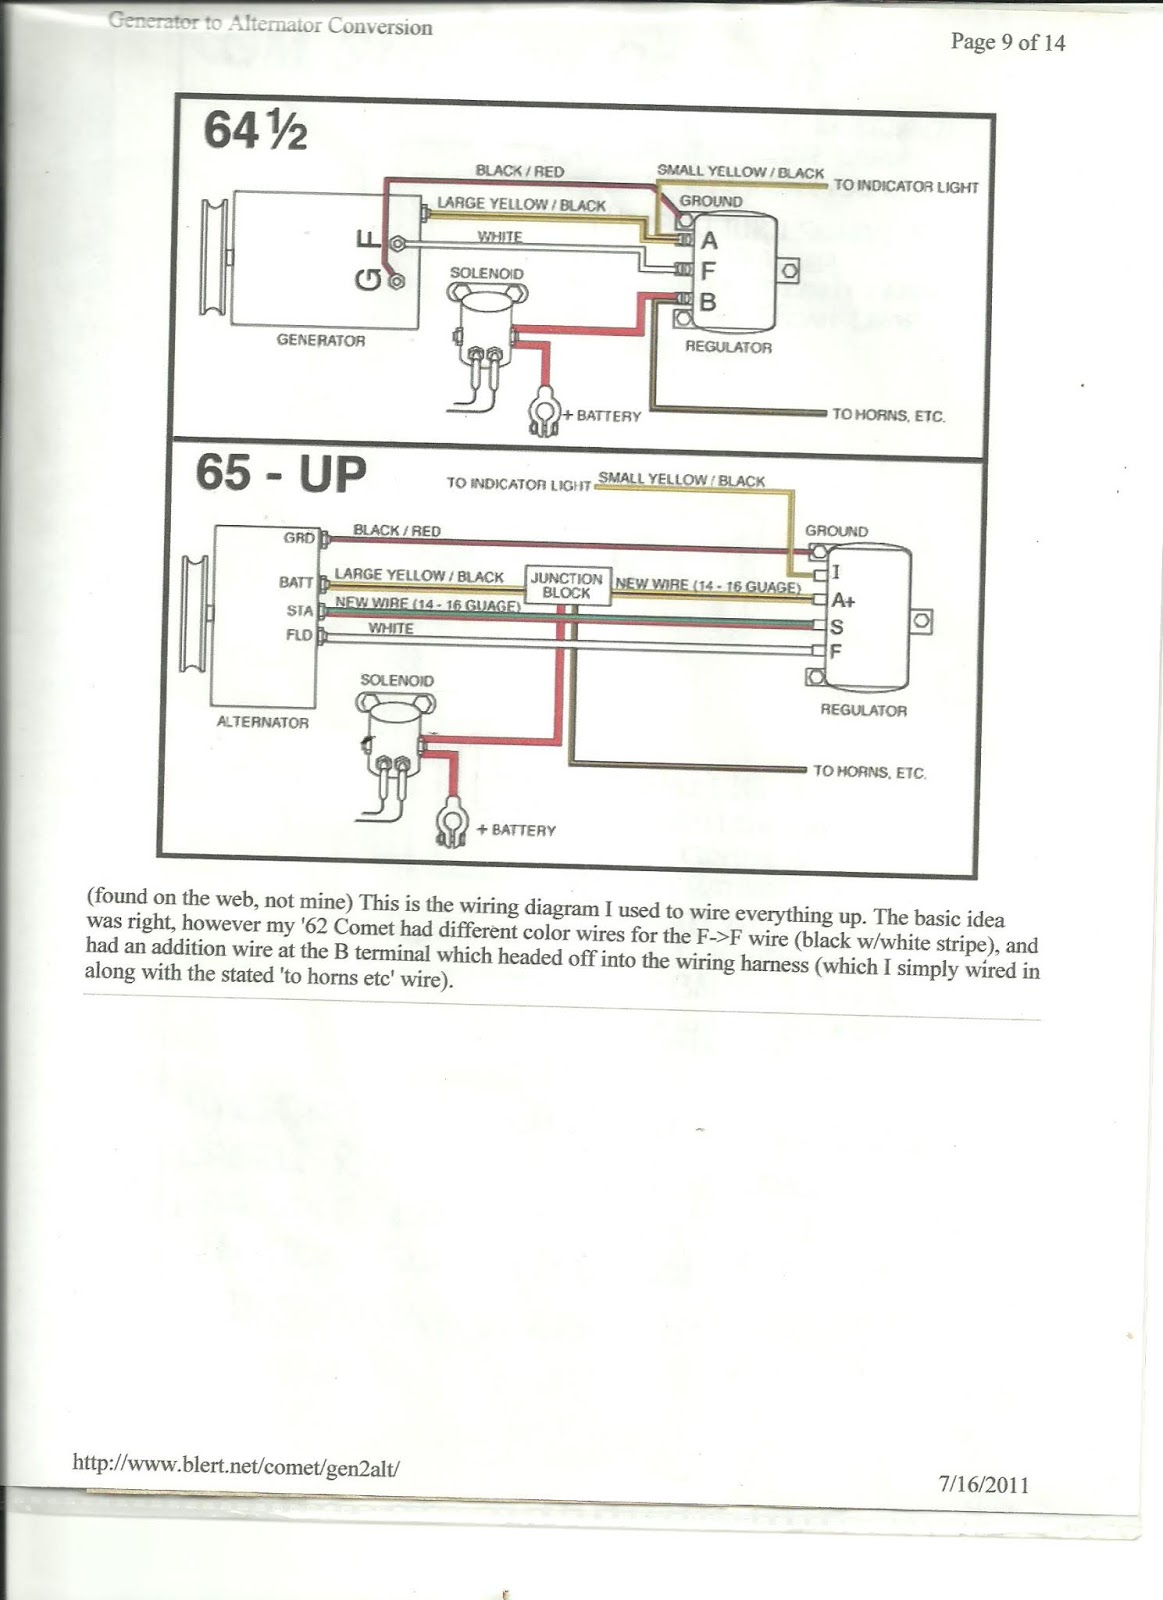 Rebel Wire 5 Speed Overdrive Circuit Wiring Diagram For 1955 Chevrolet Passenger Car Ford Charging Systems Alternator And Generator